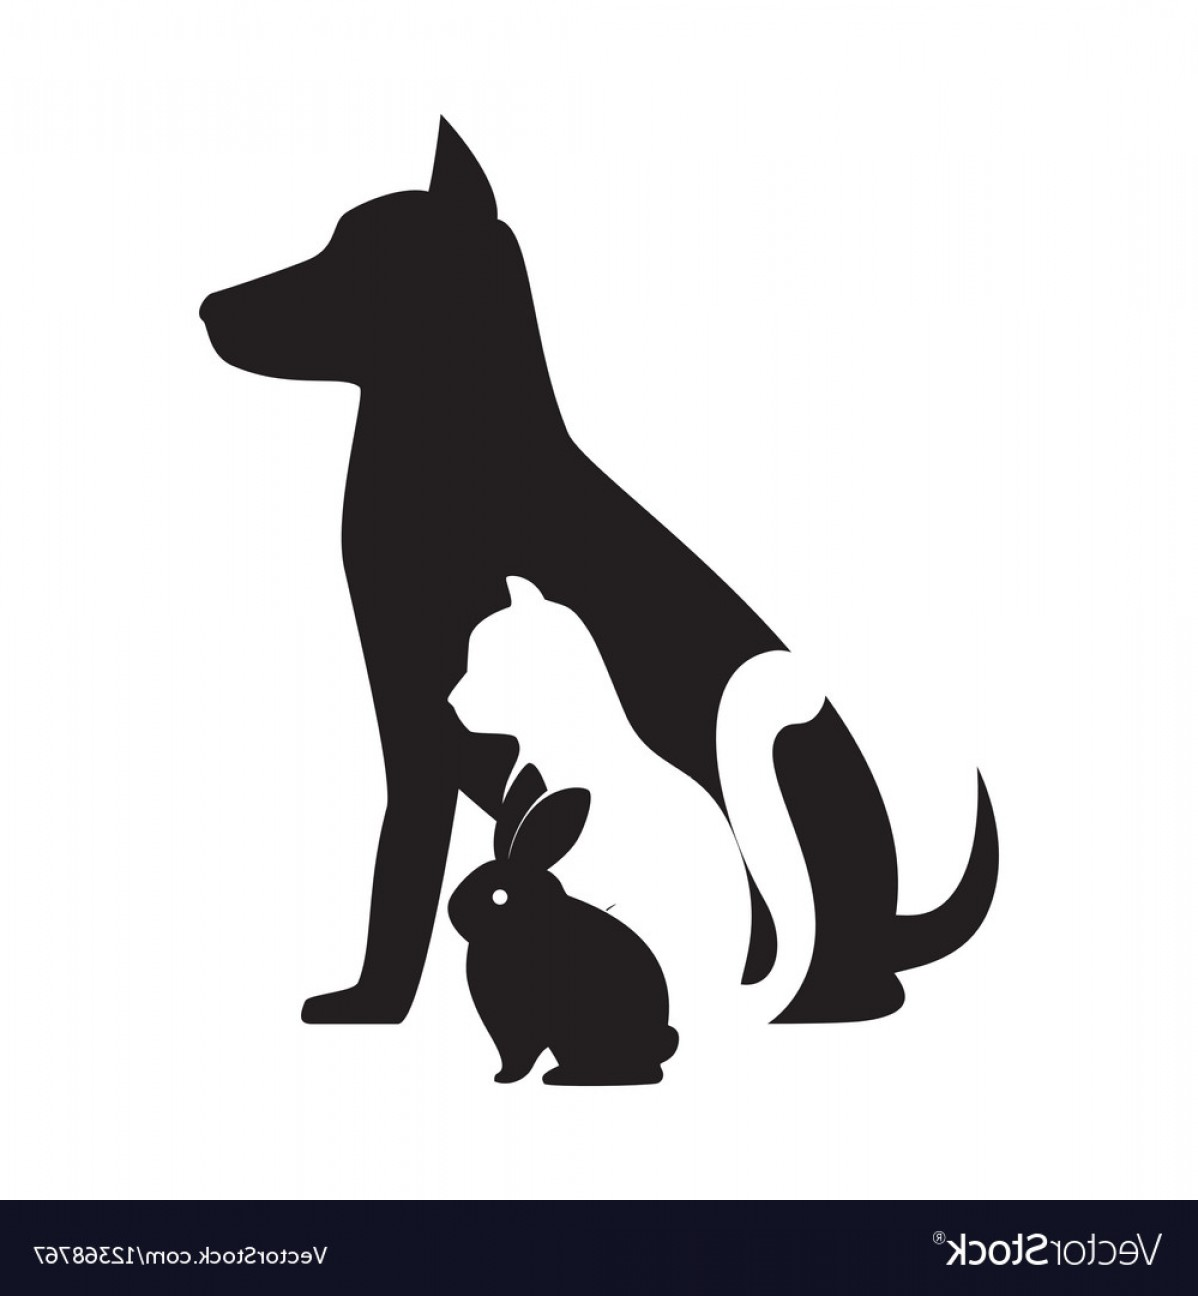 Dog And Cat Vector Illustration: Pet Shop Veterinary Sign Silhouette Dog Cat Bunny Vector